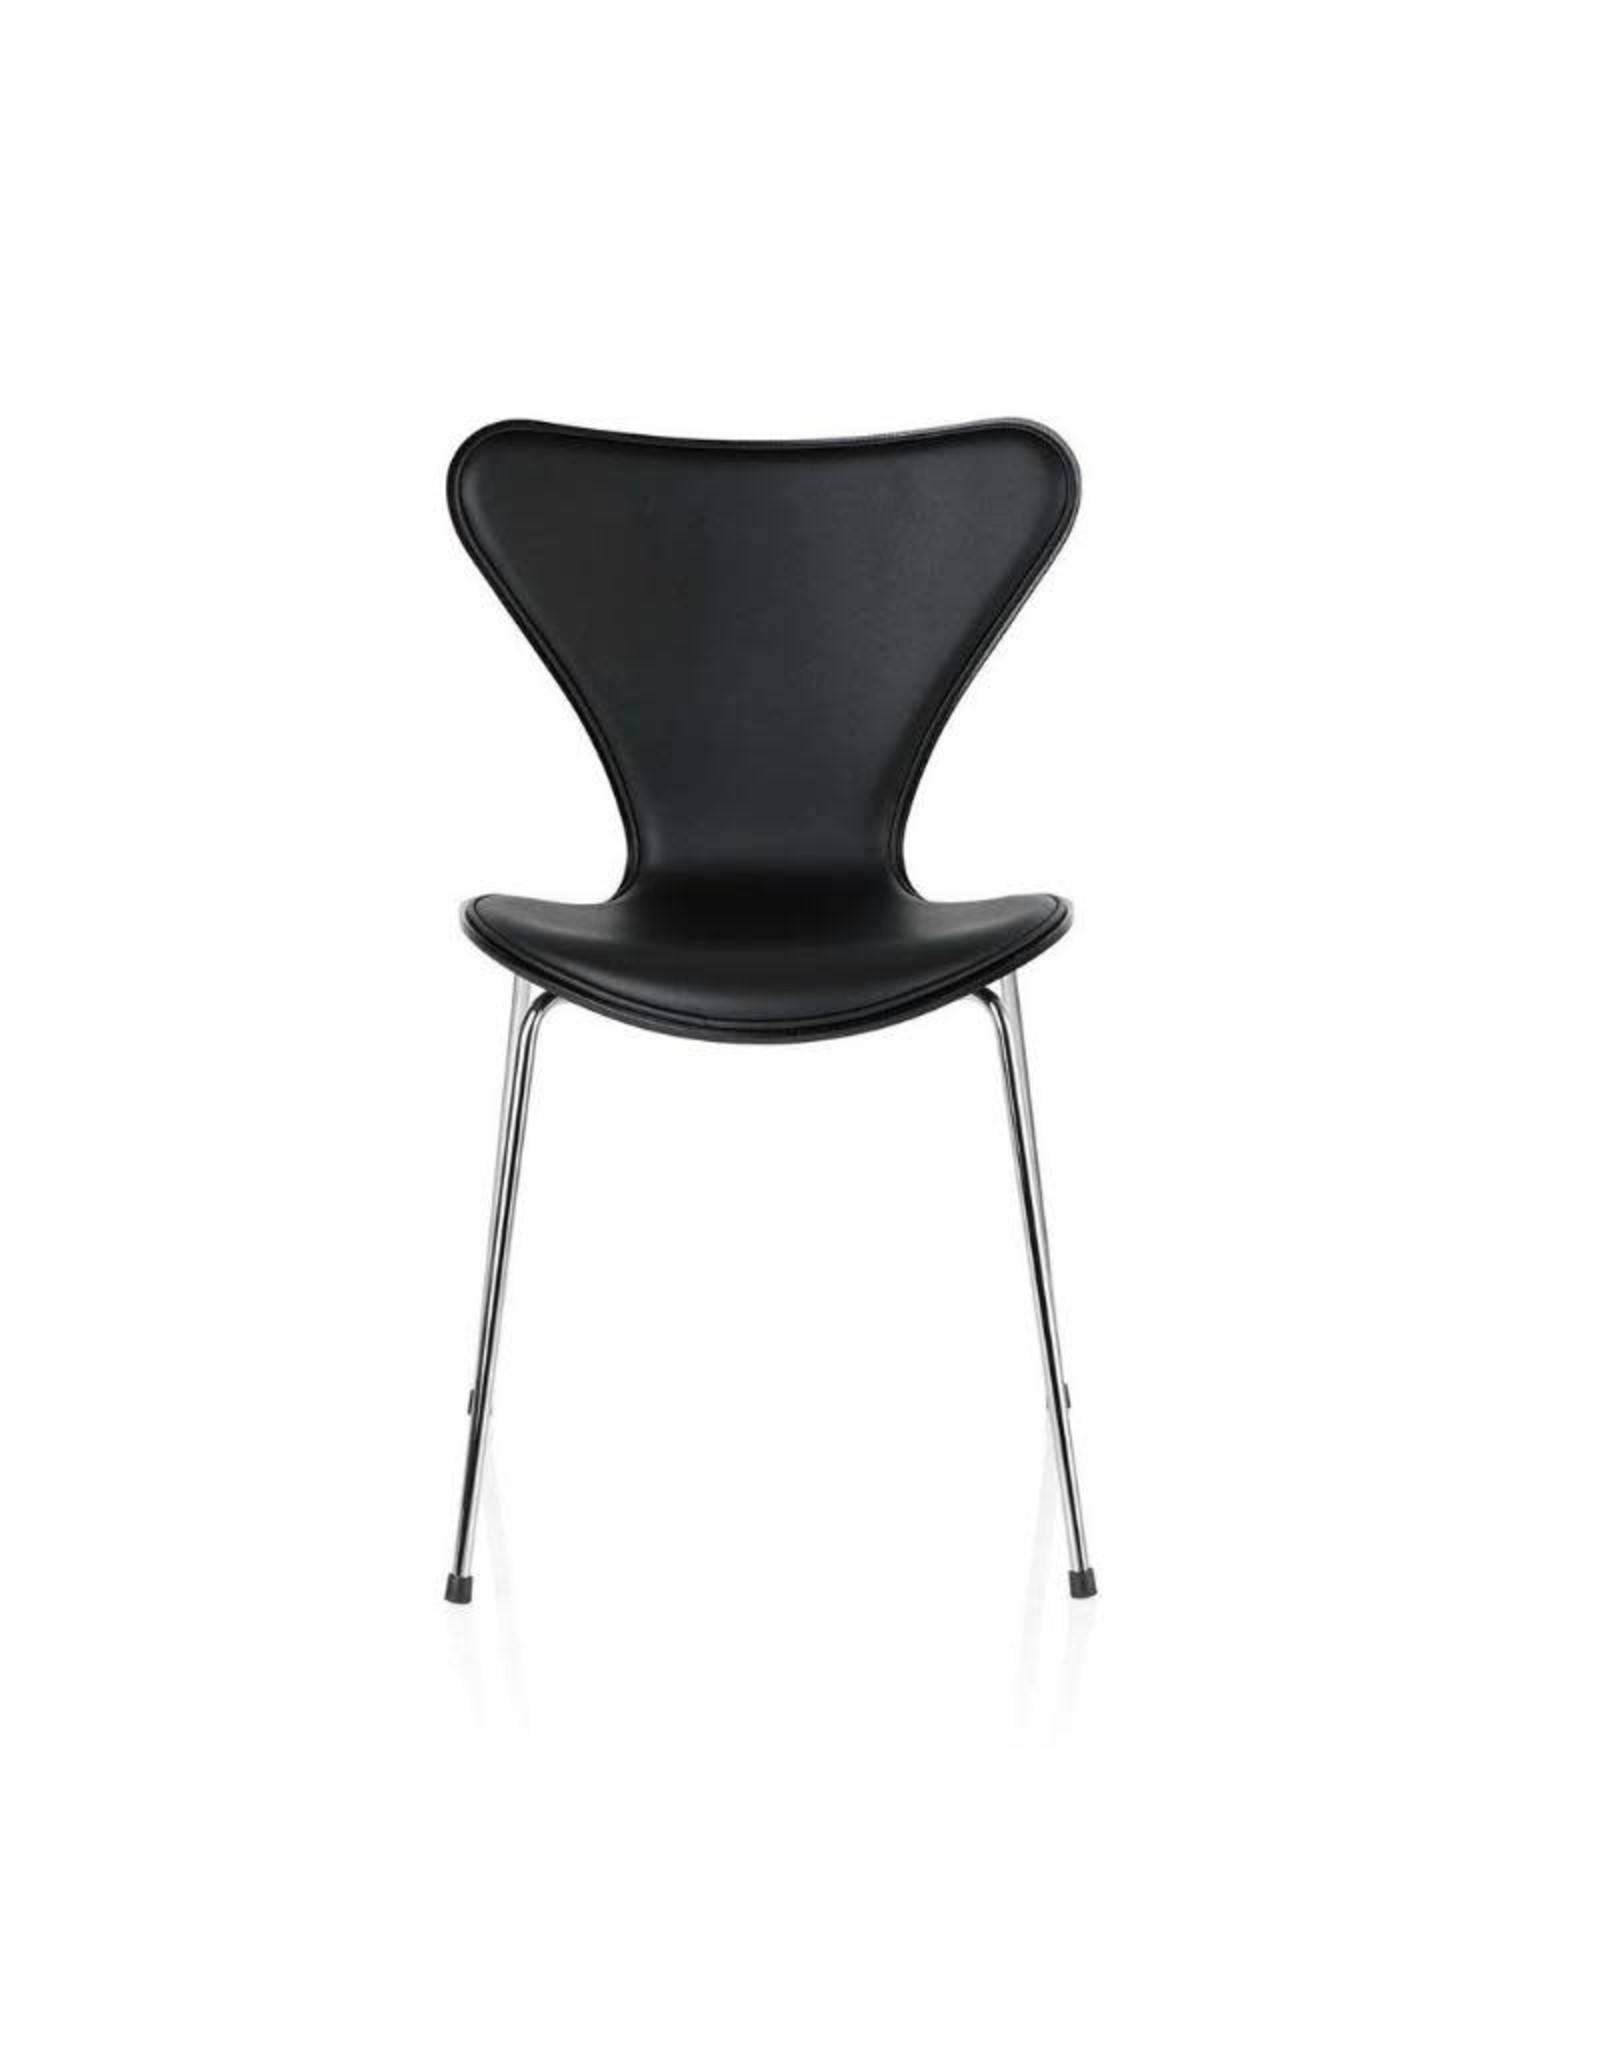 3107 SERIES 7 CHAIR, FRONT UPHOLSTERED LEATHER